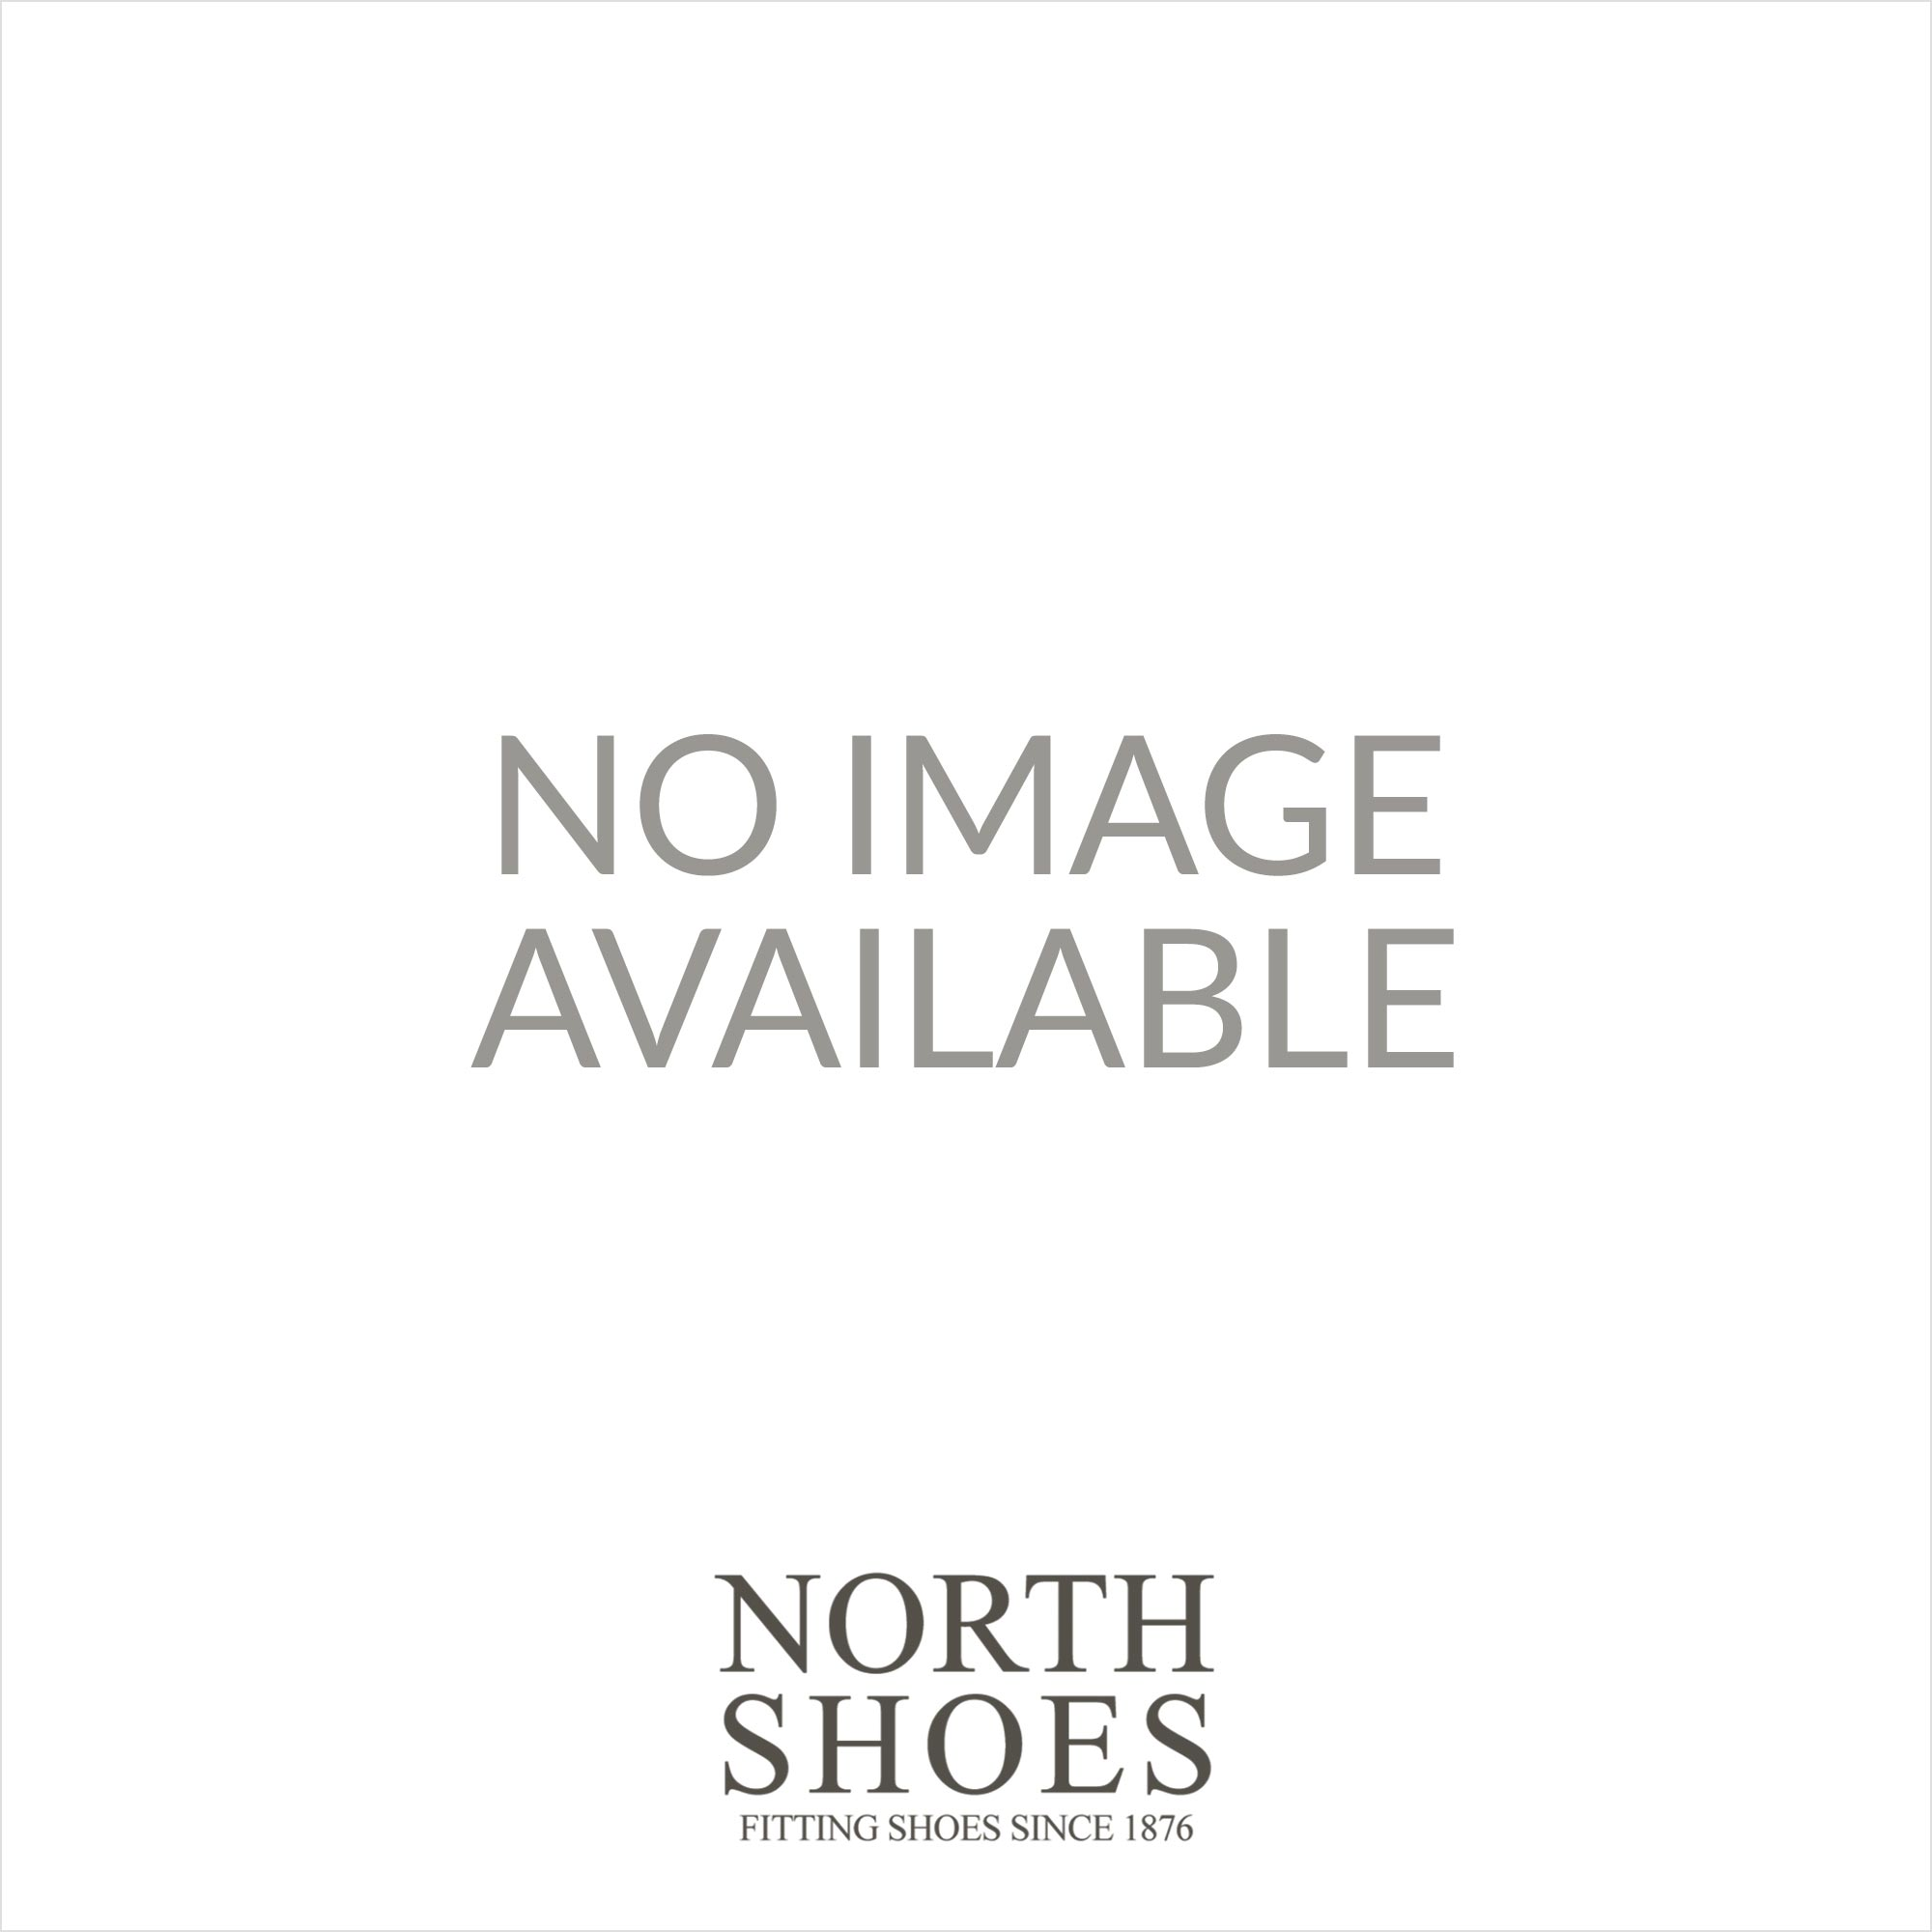 ed7cf7397c7 Toni Pons Tarbes Navy And White Striped Canvas Womens Wedge Espadrille  Sandal